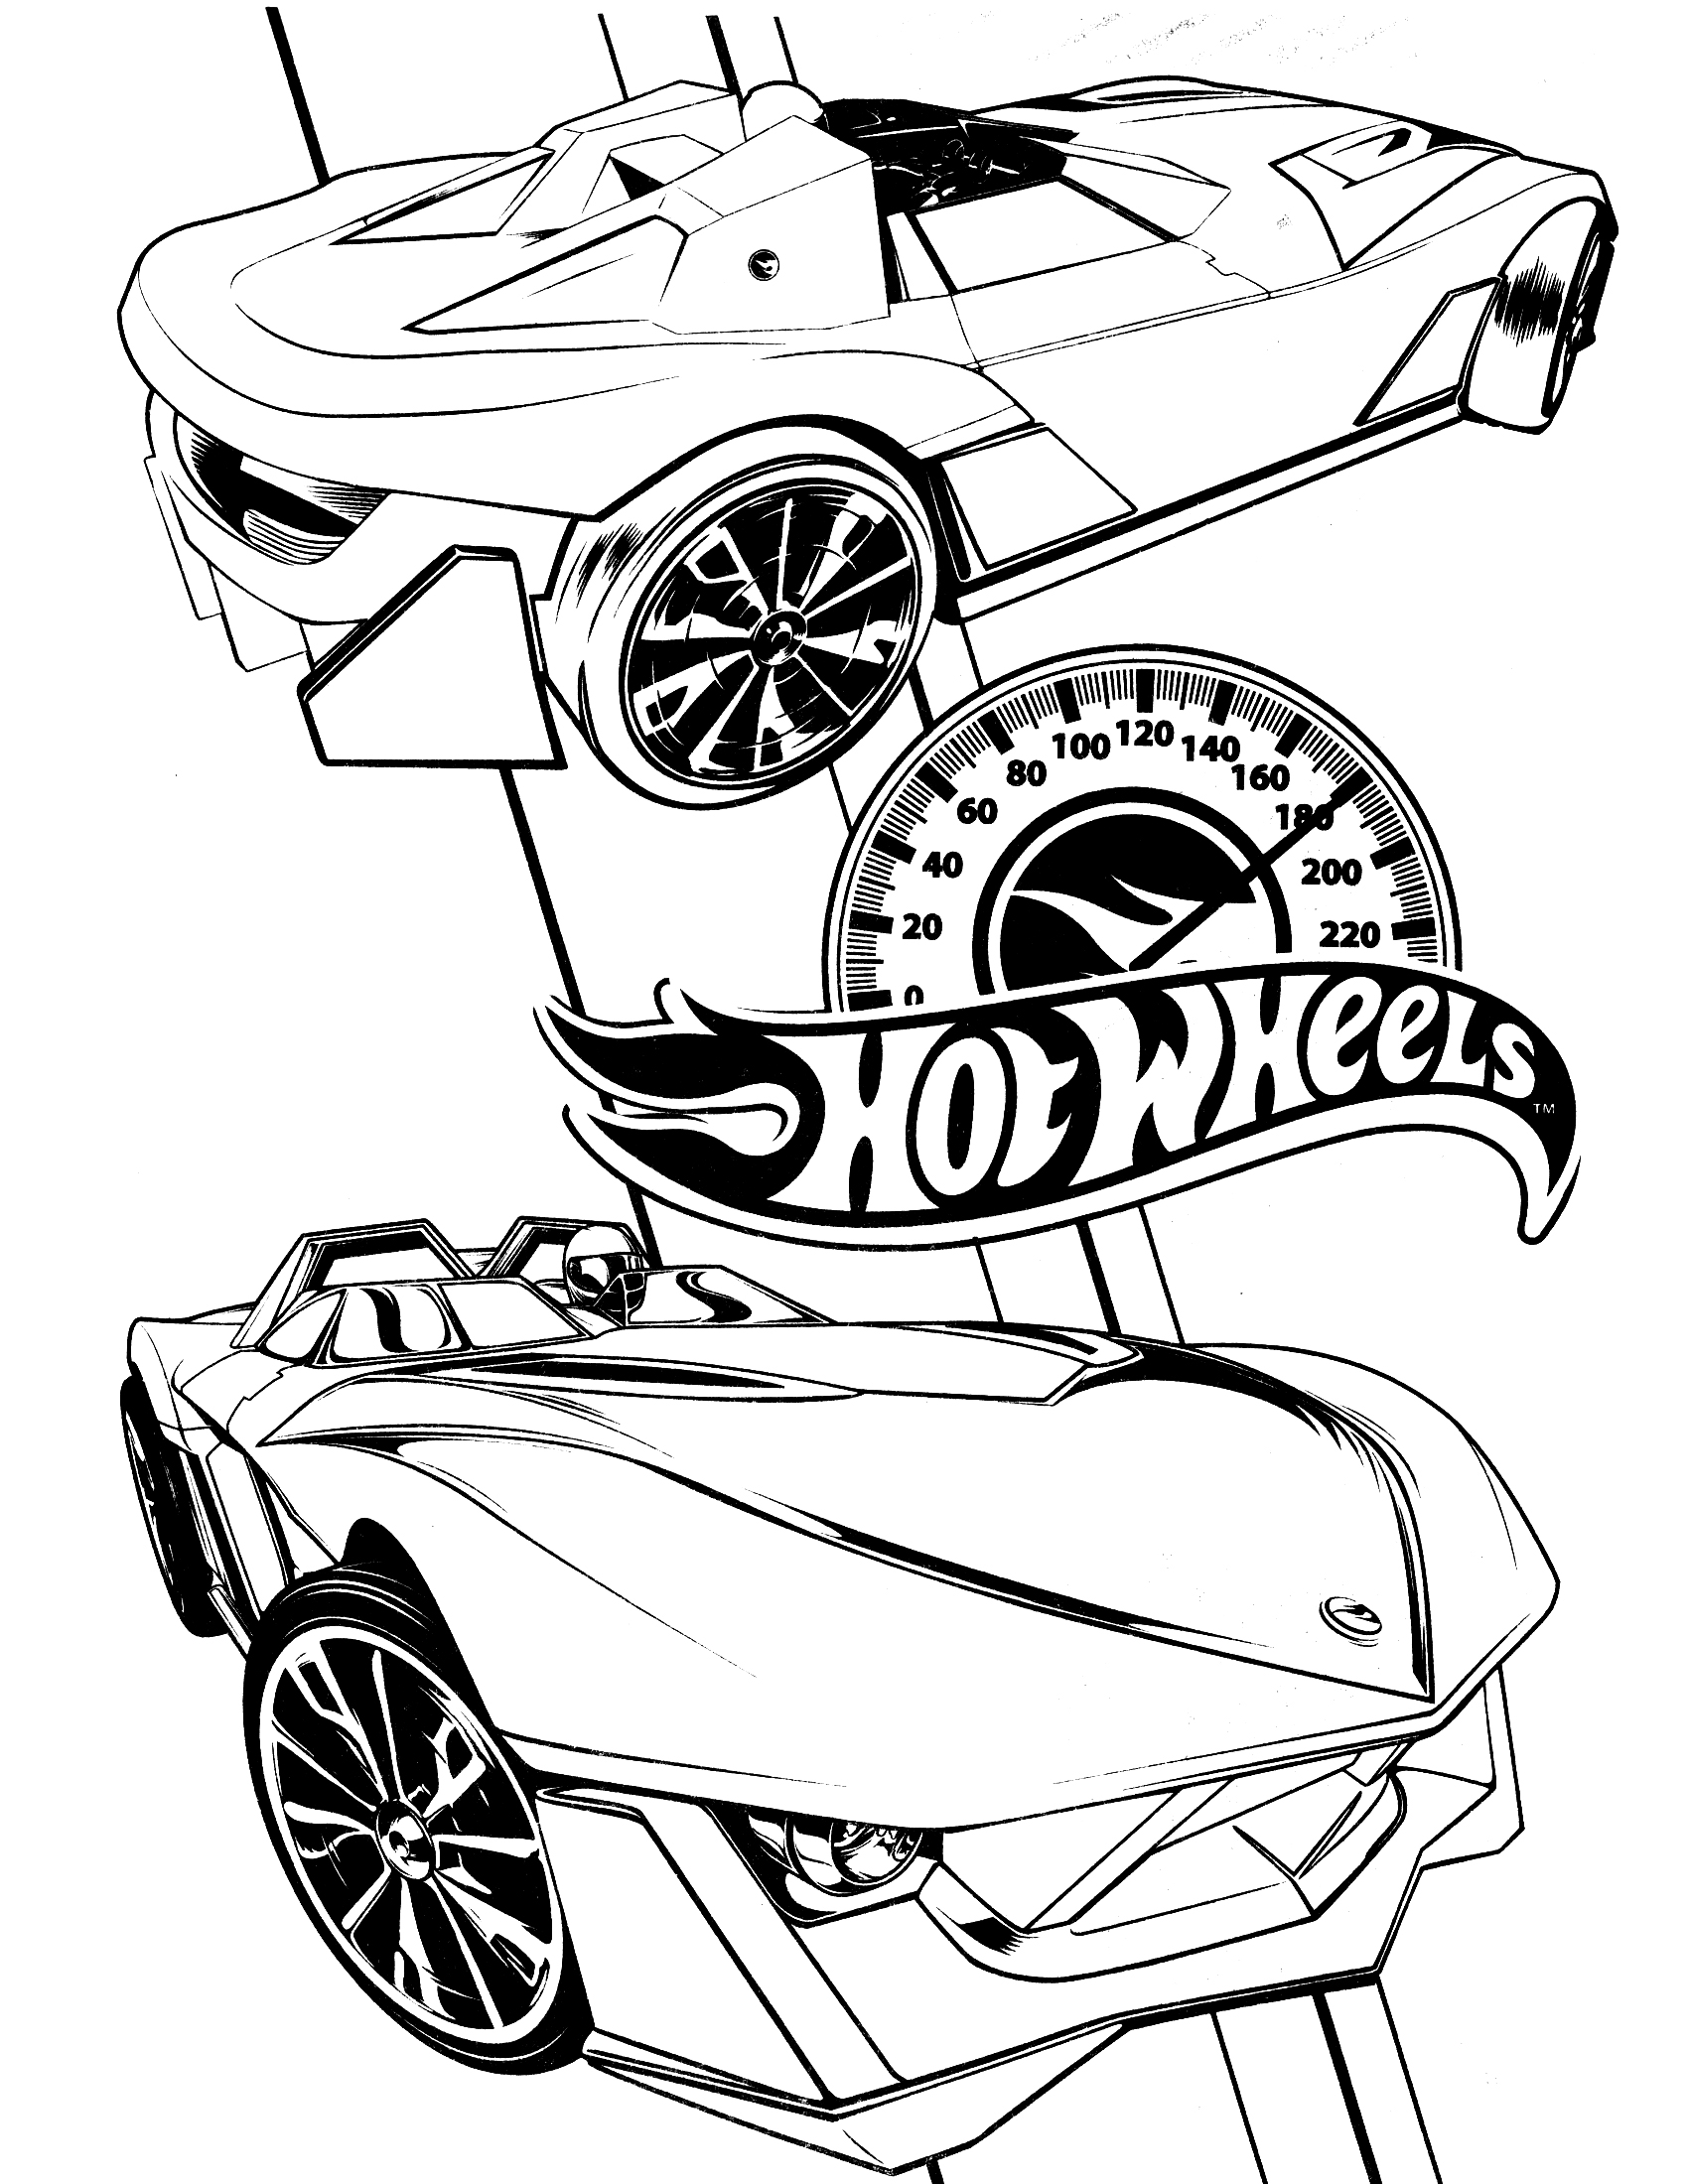 hot wheel coloring pages hot wheels coloring pages getcoloringpagescom pages hot coloring wheel